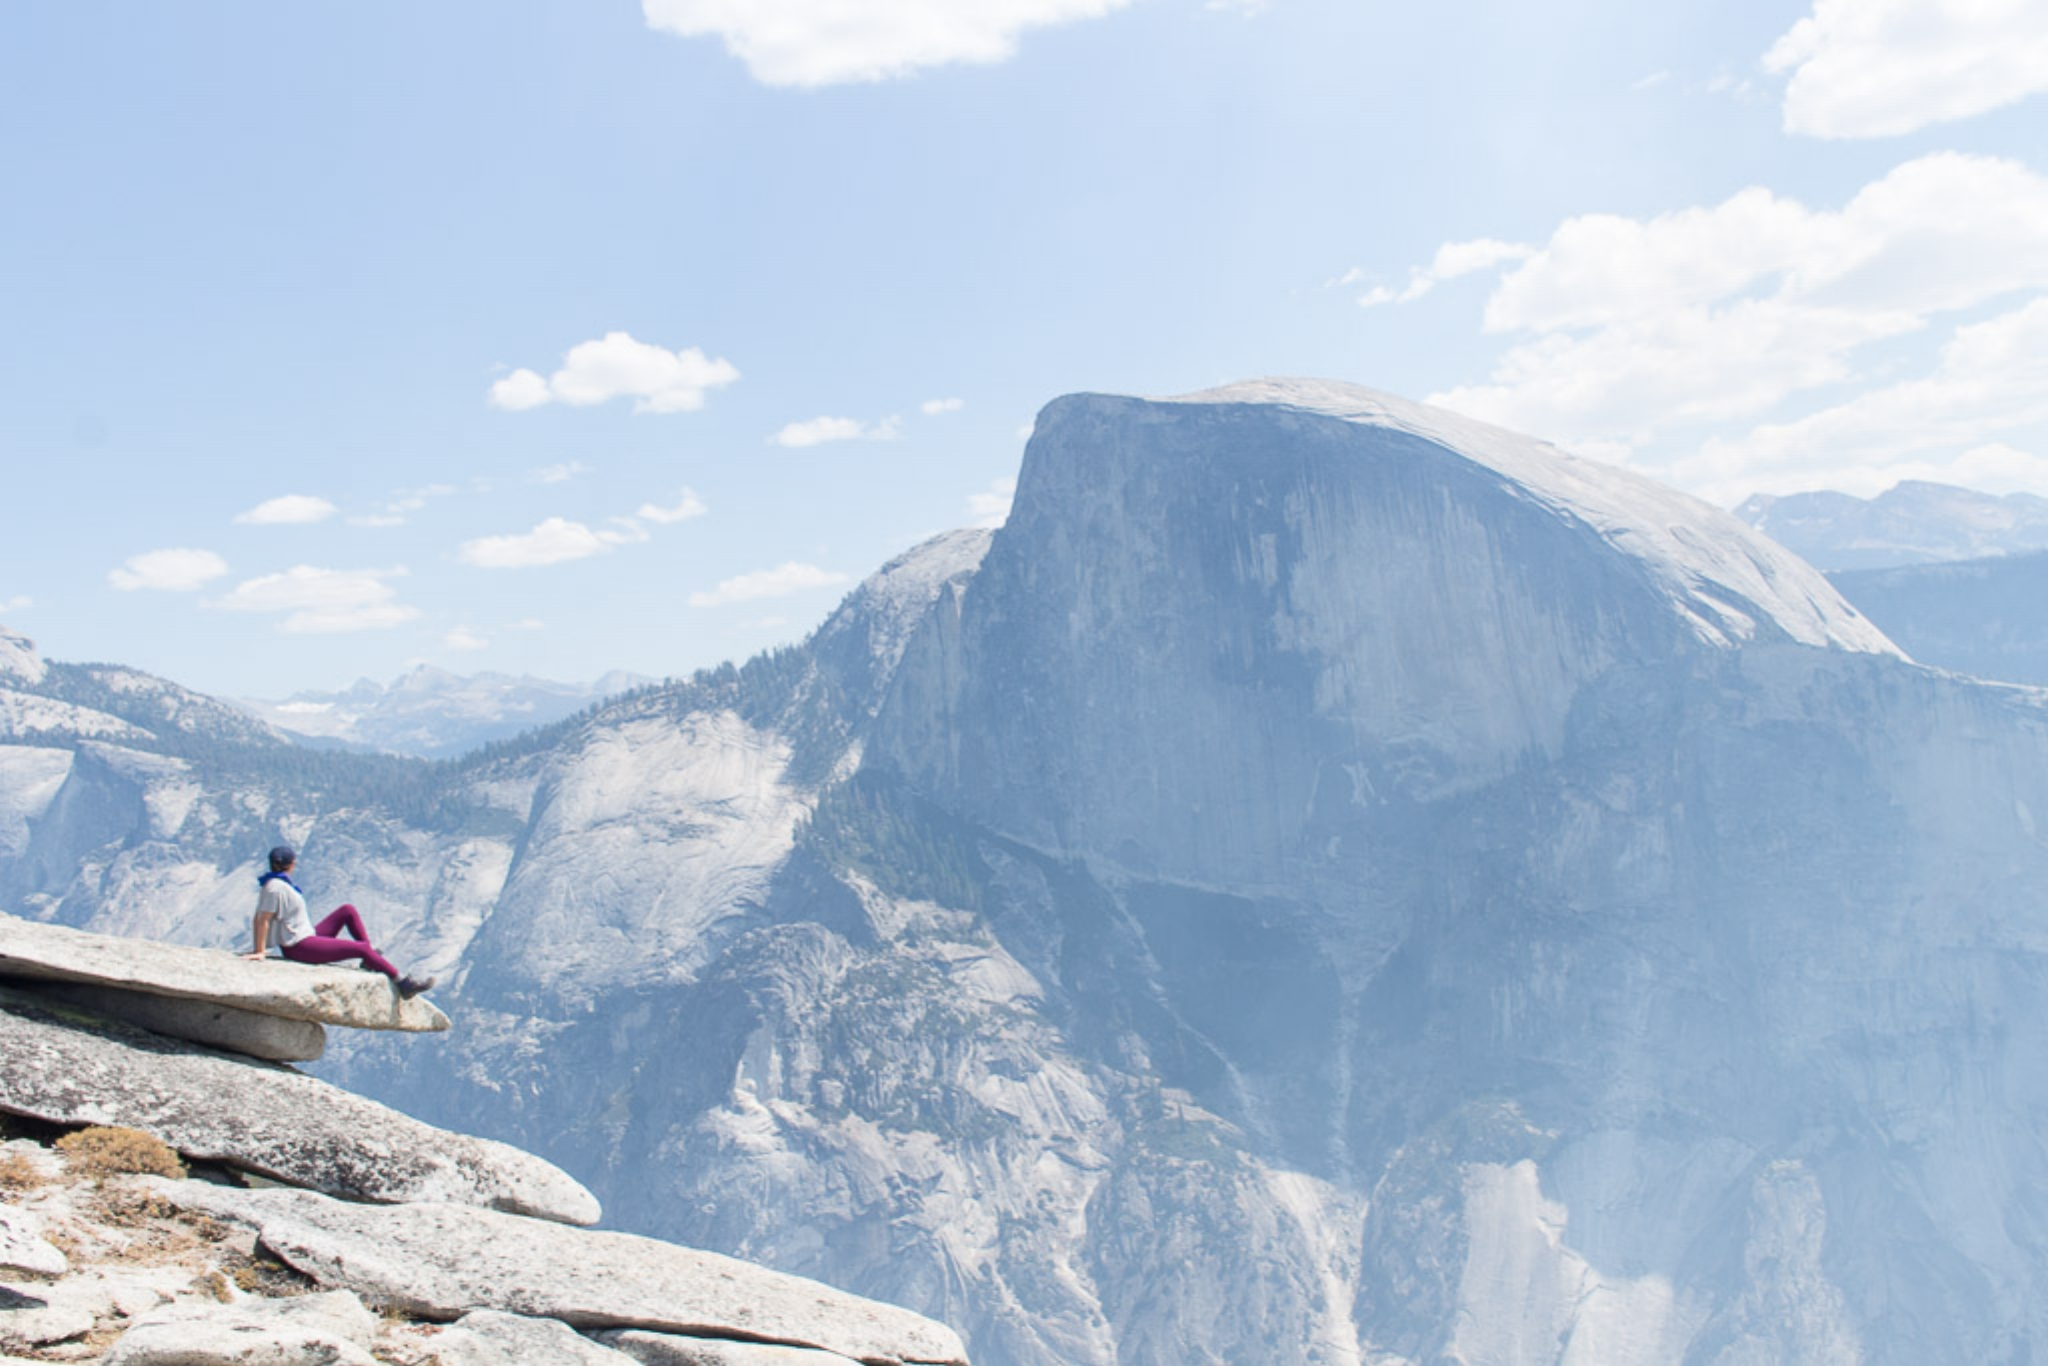 Views of Half Dome from North Dome.